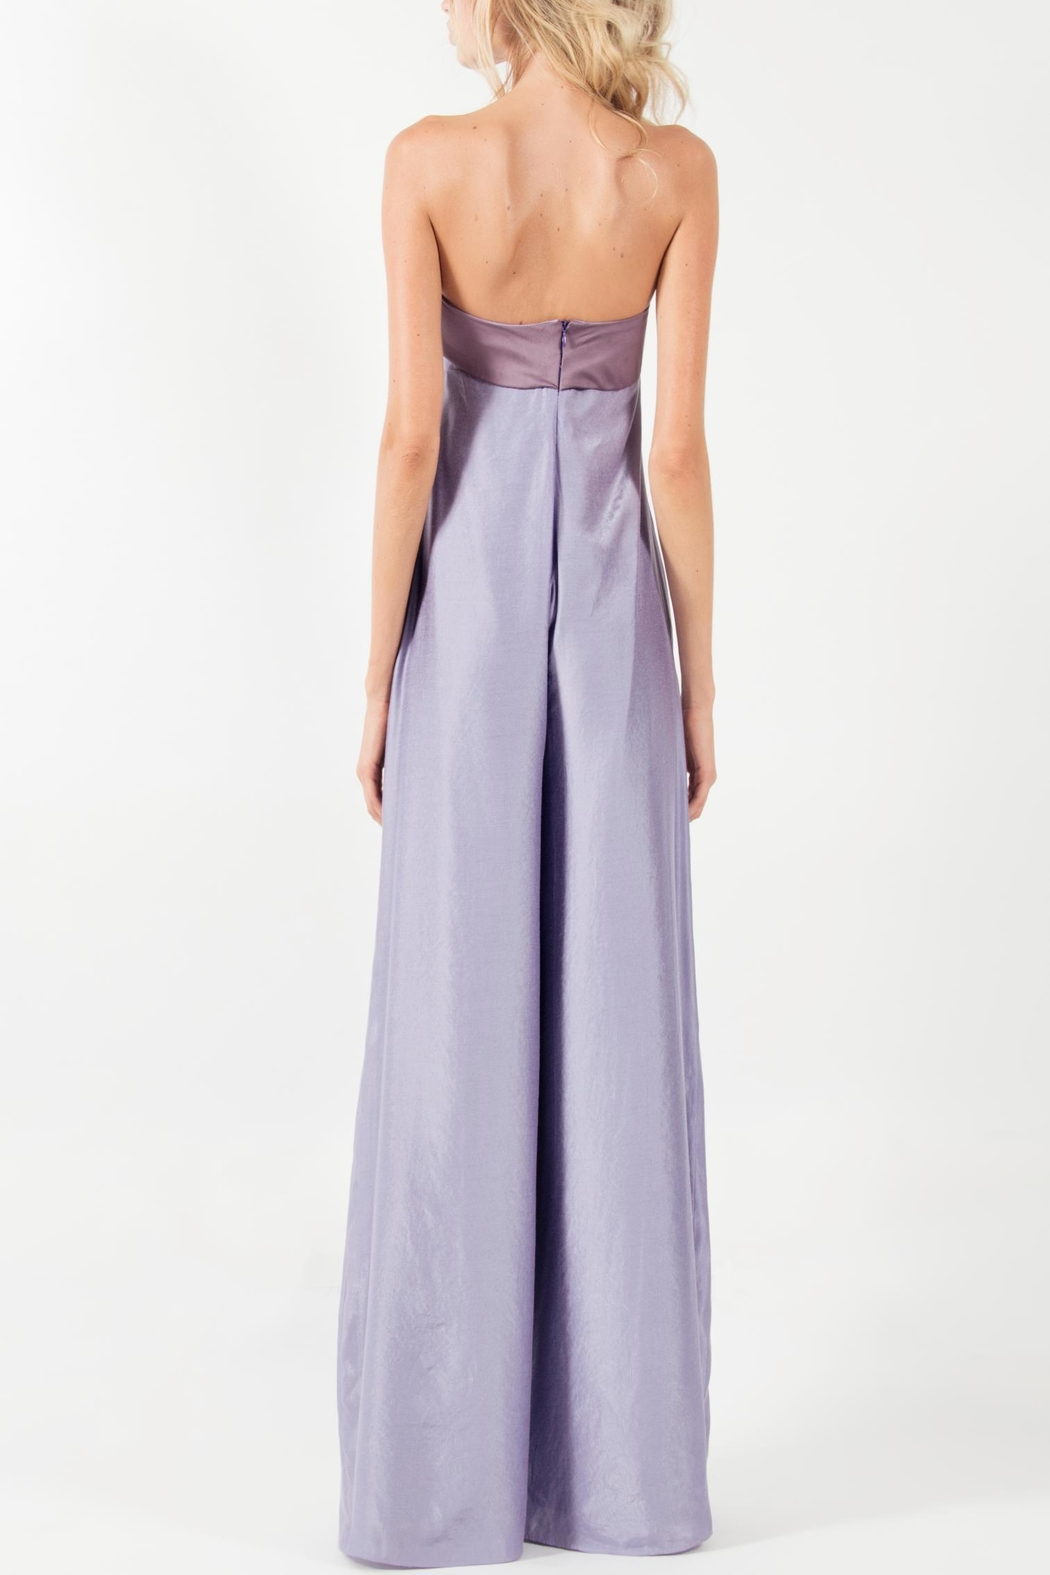 Viesca y Viesca Strapless Jumpsuit - Front Full Image